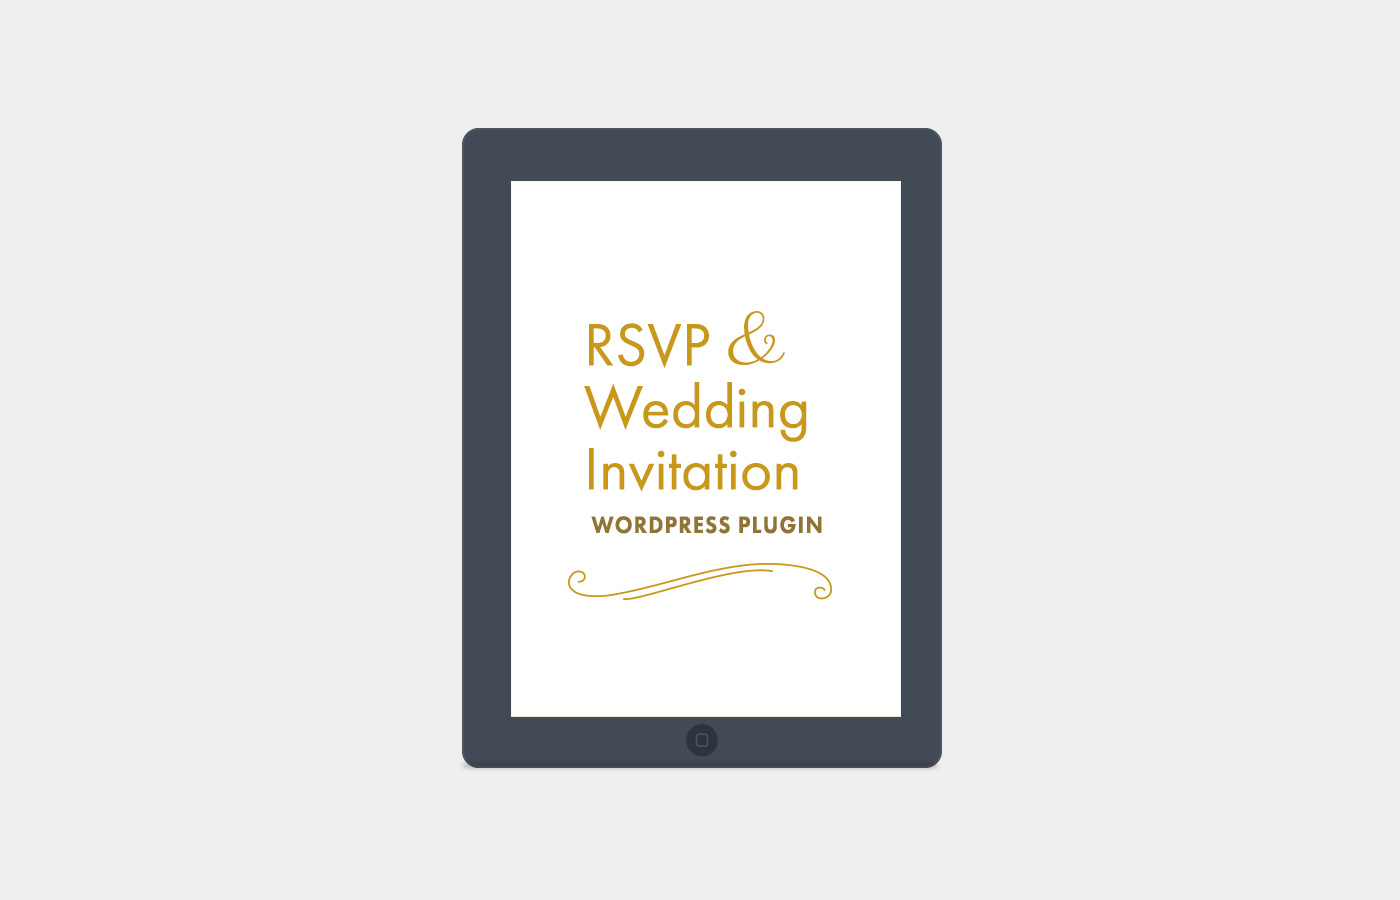 Crafted PixelsRSVP and Wedding Invitation WordPress Plugin | Crafted ...